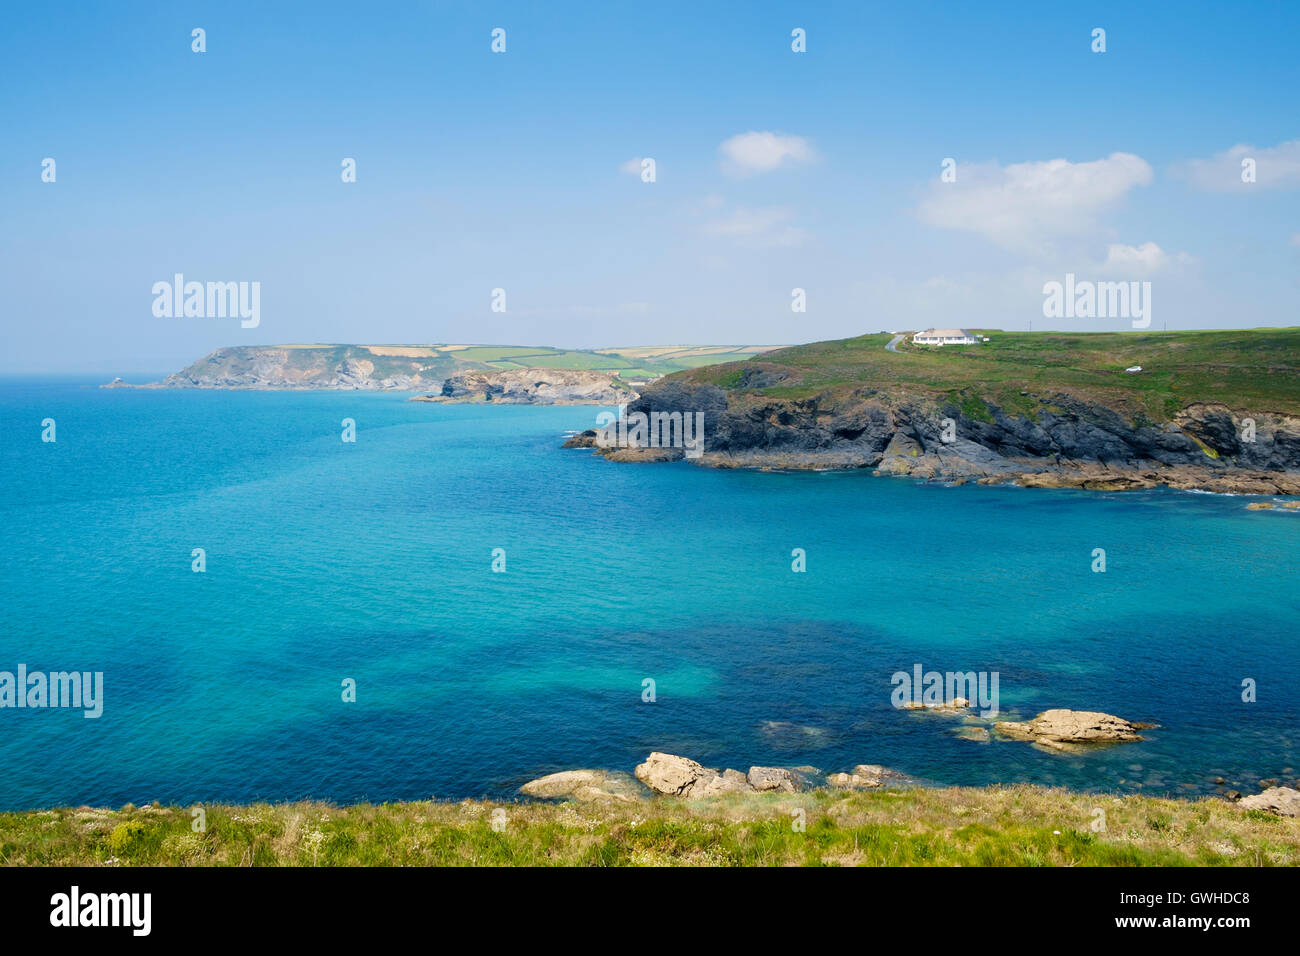 Clear blue sea off the coast of Poldhu Cove, Lizard Peninsula, Cornwall, England, UK in summer - Stock Image